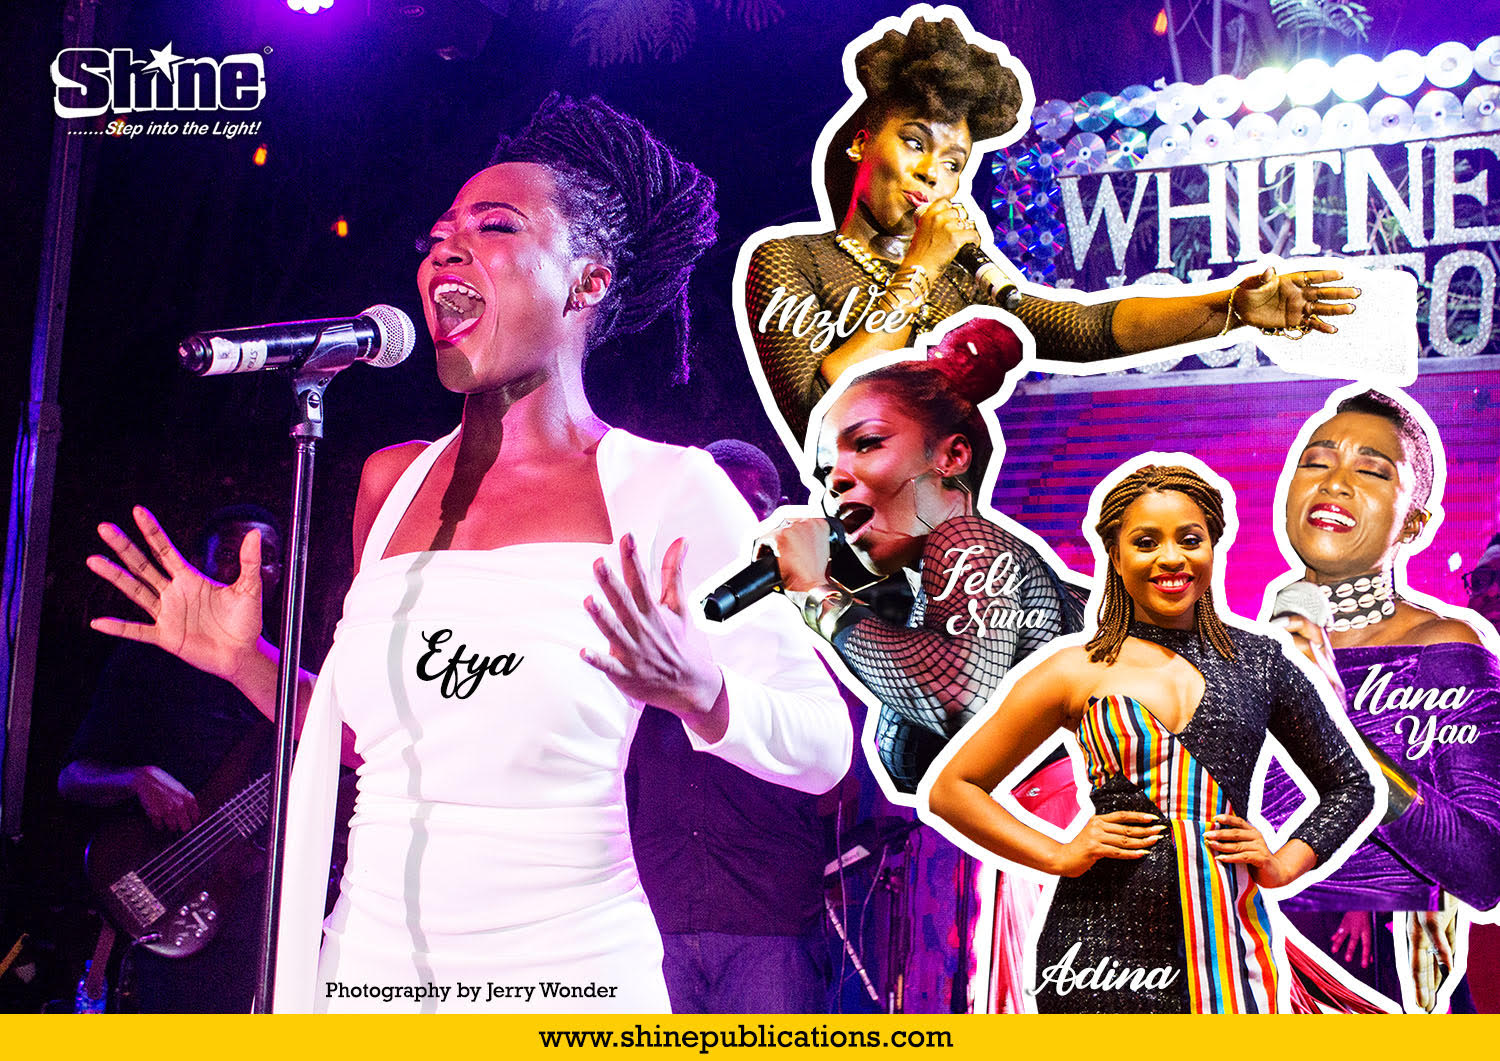 Six Ghanaian Artistes Whose Talents Are Being Limited: Adina, Efya